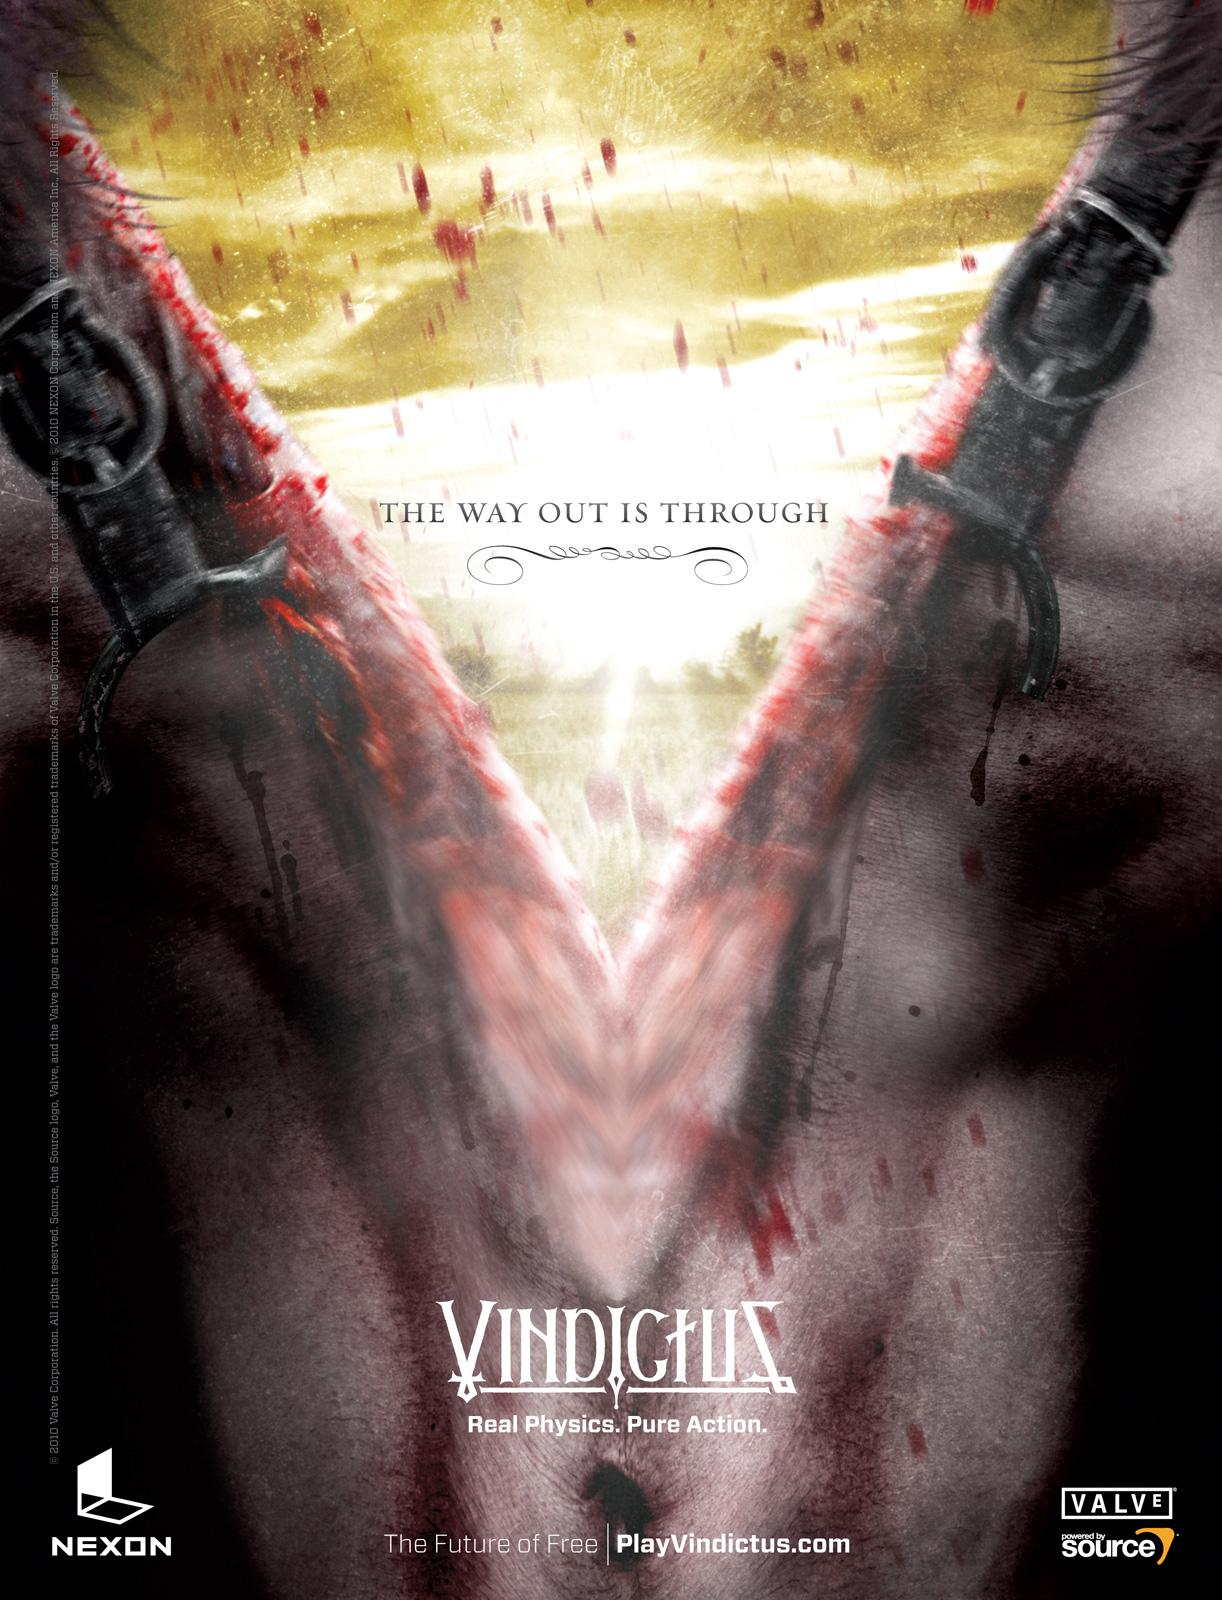 Vindictus Print Ad -  The Way Out is Through